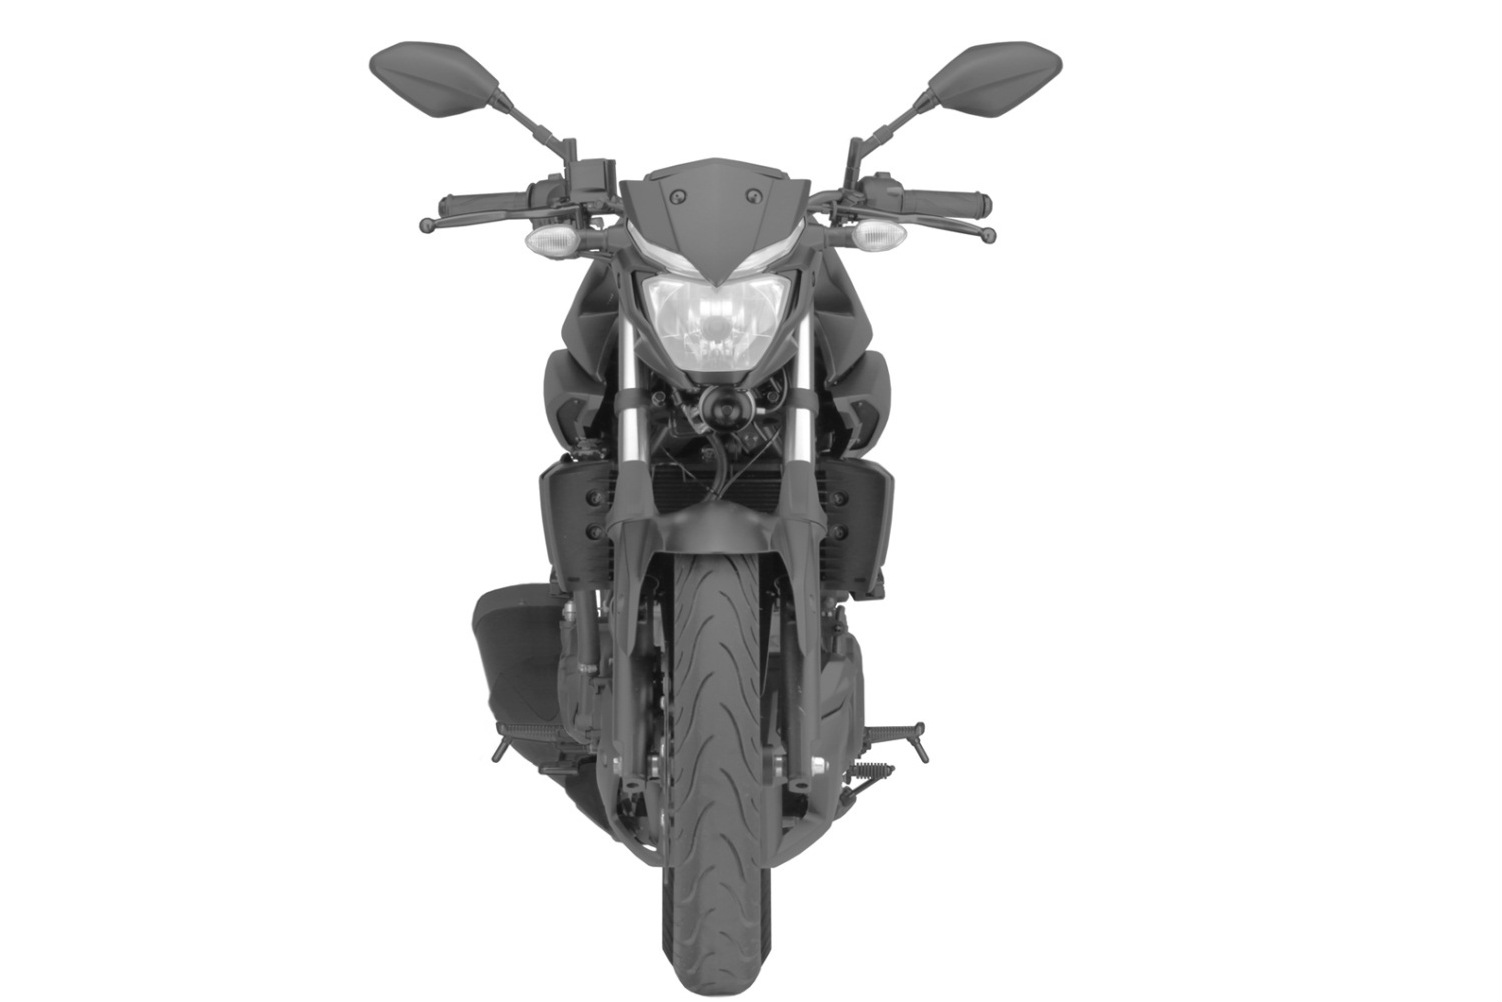 Yamaha MT-03 revealed?